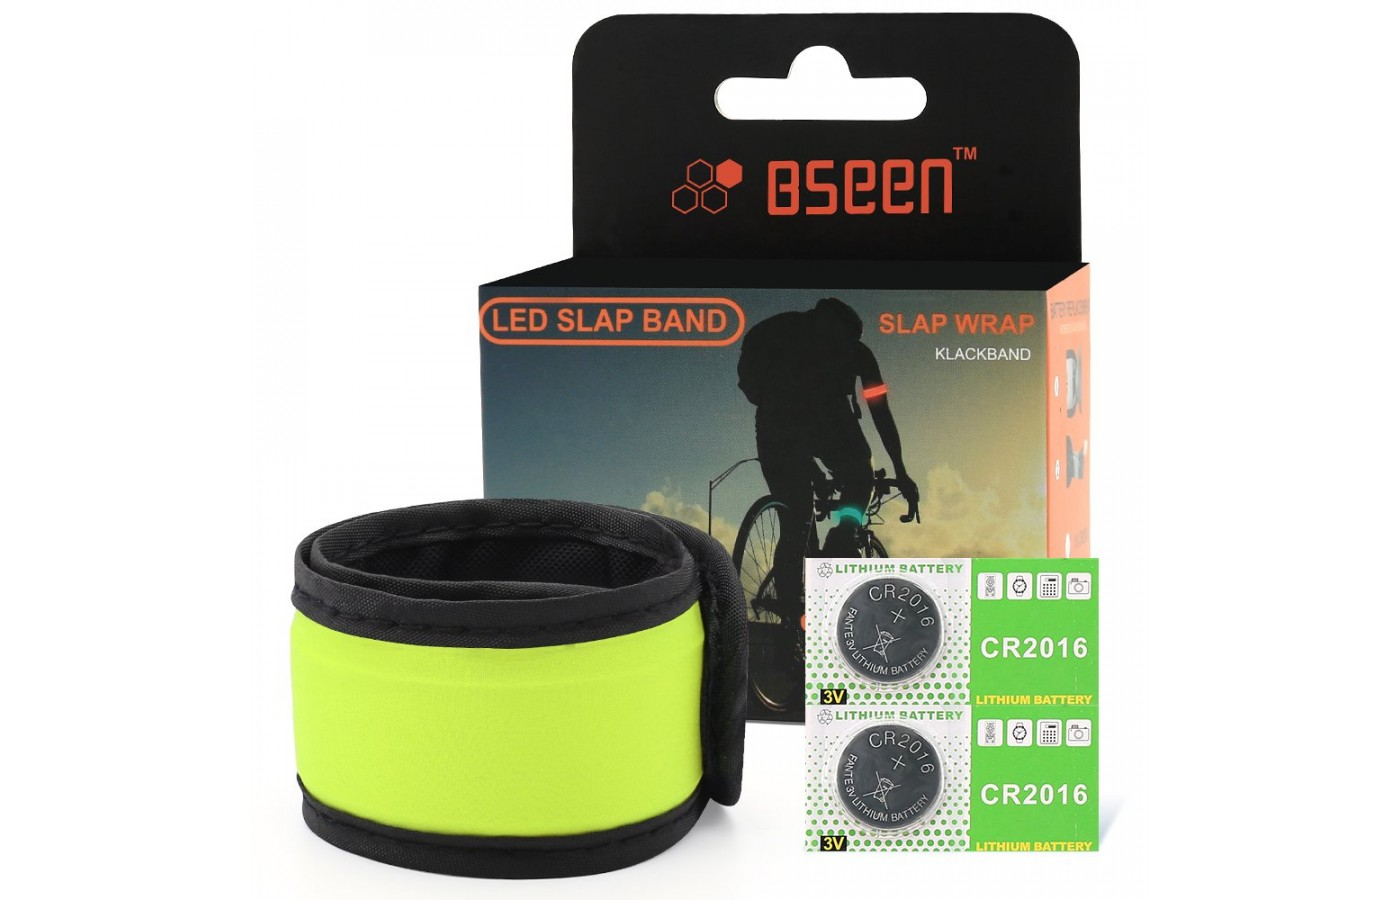 BSEEN LED feature